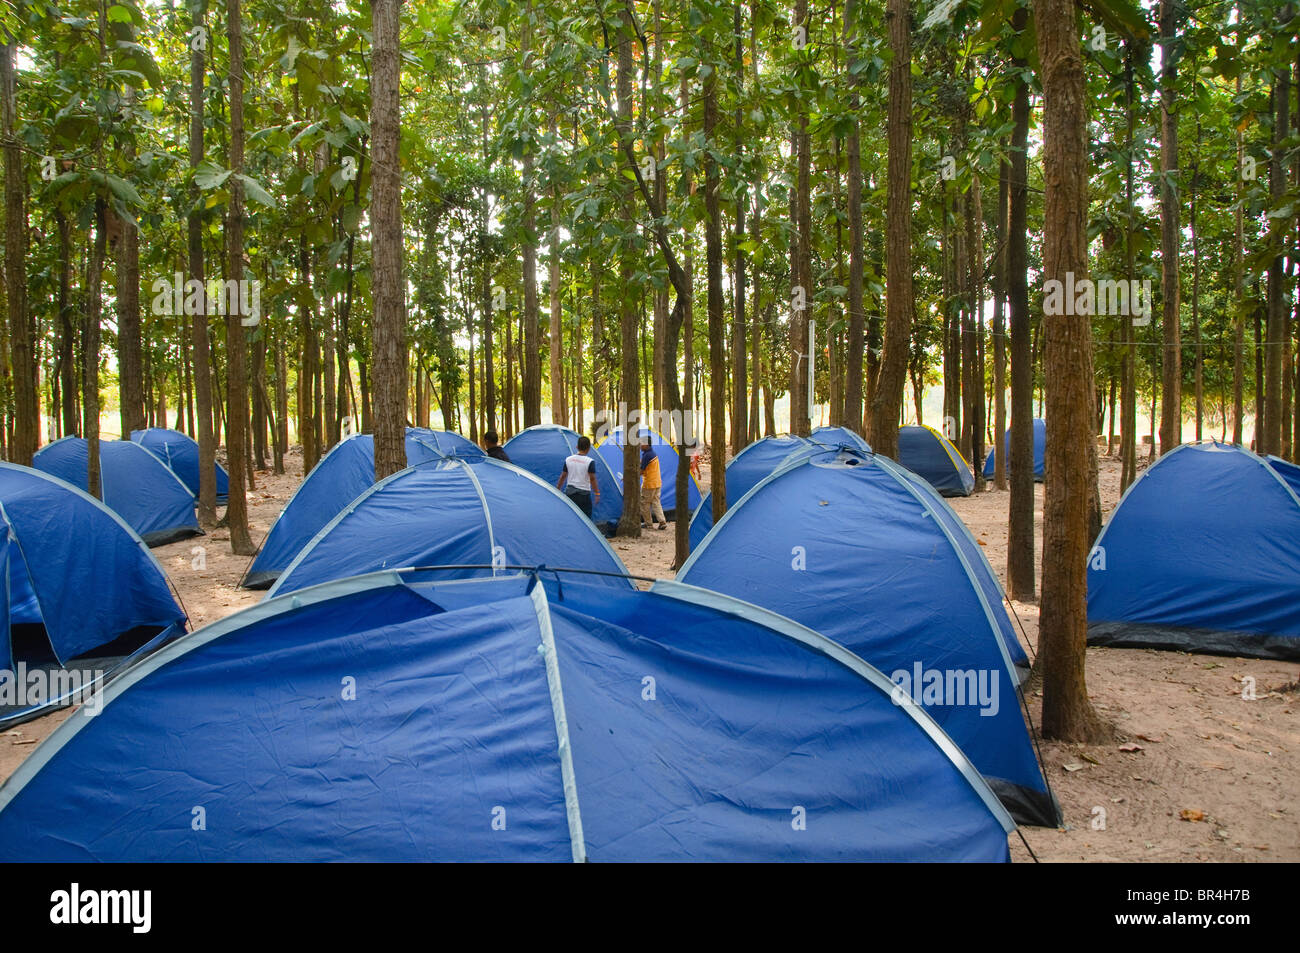 forest and tents at childrens camping trip in Thailand - Stock Image